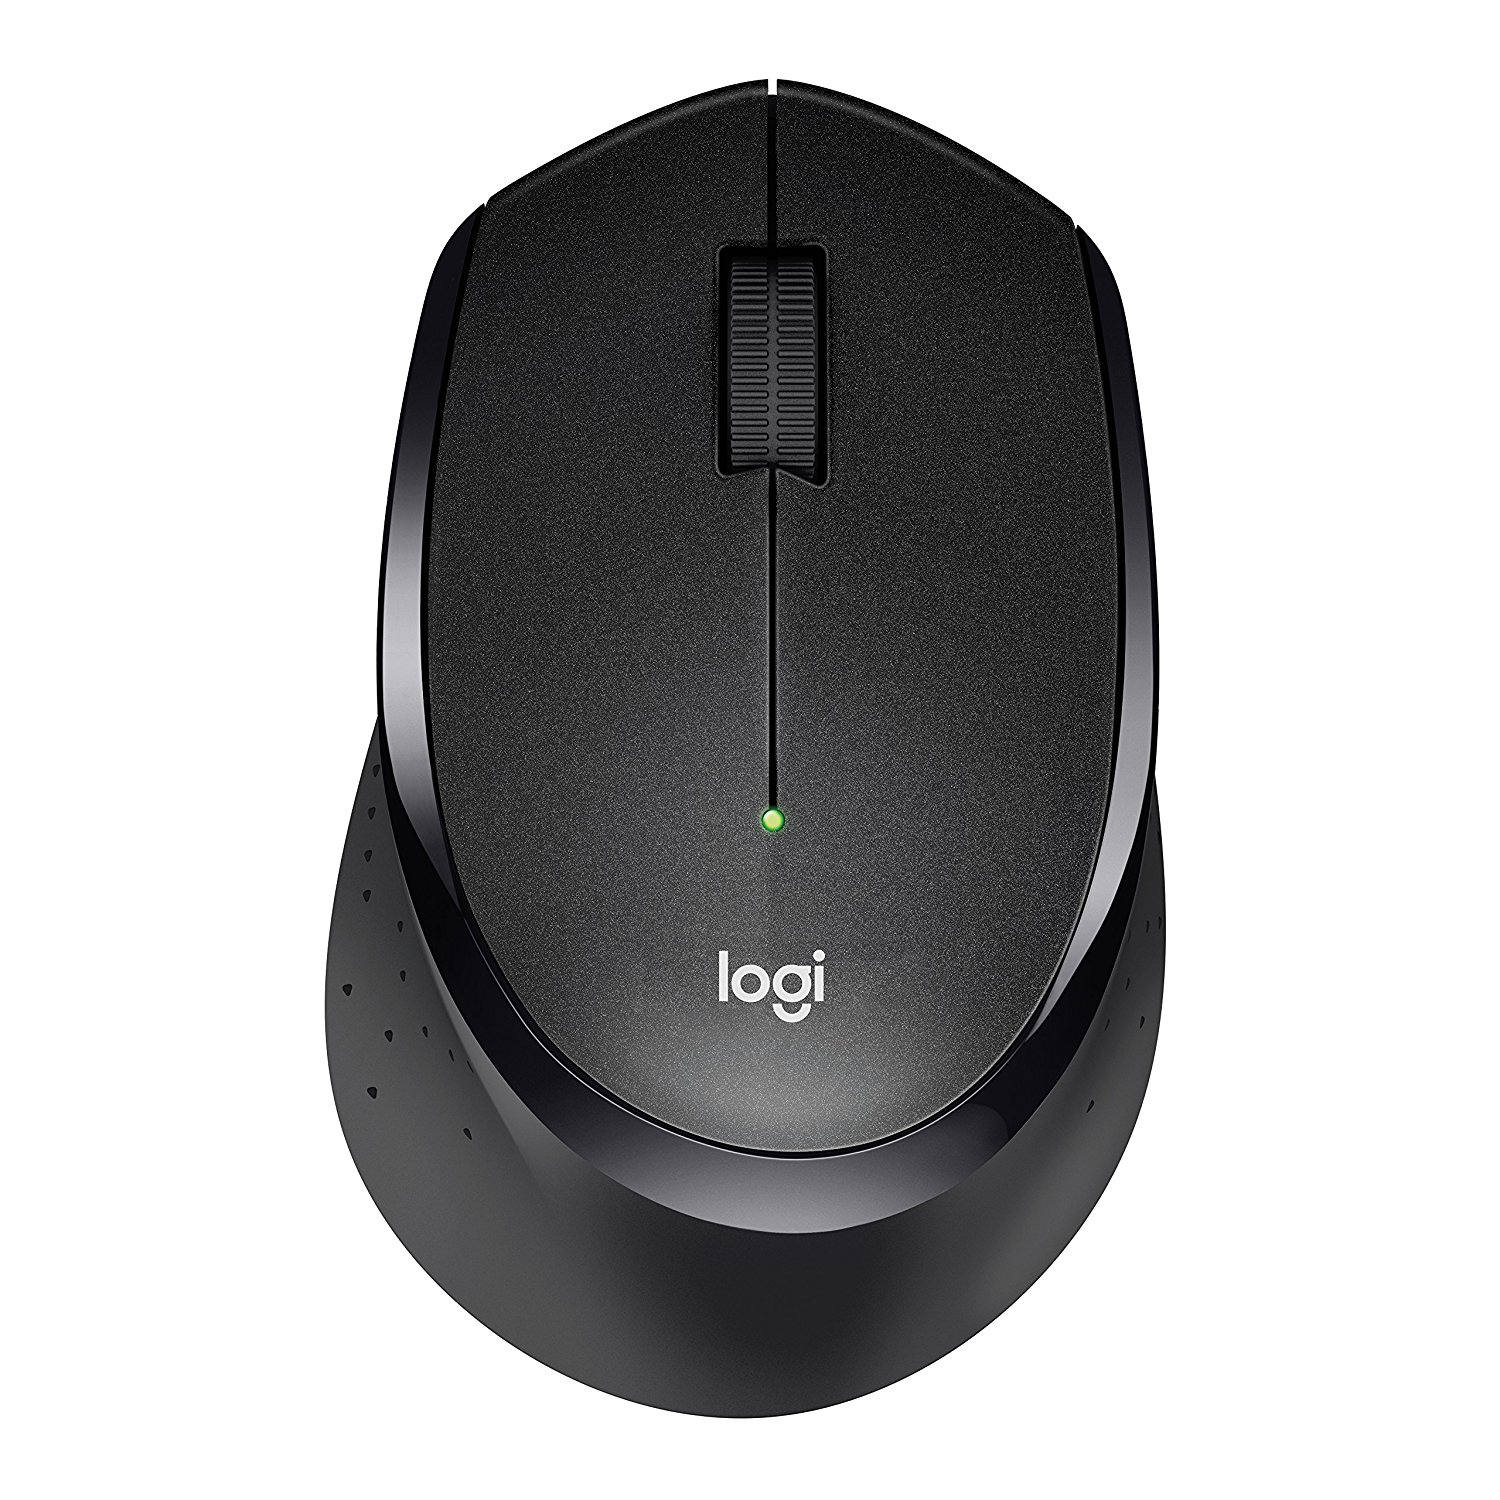 Logitech Maus M330 amazon